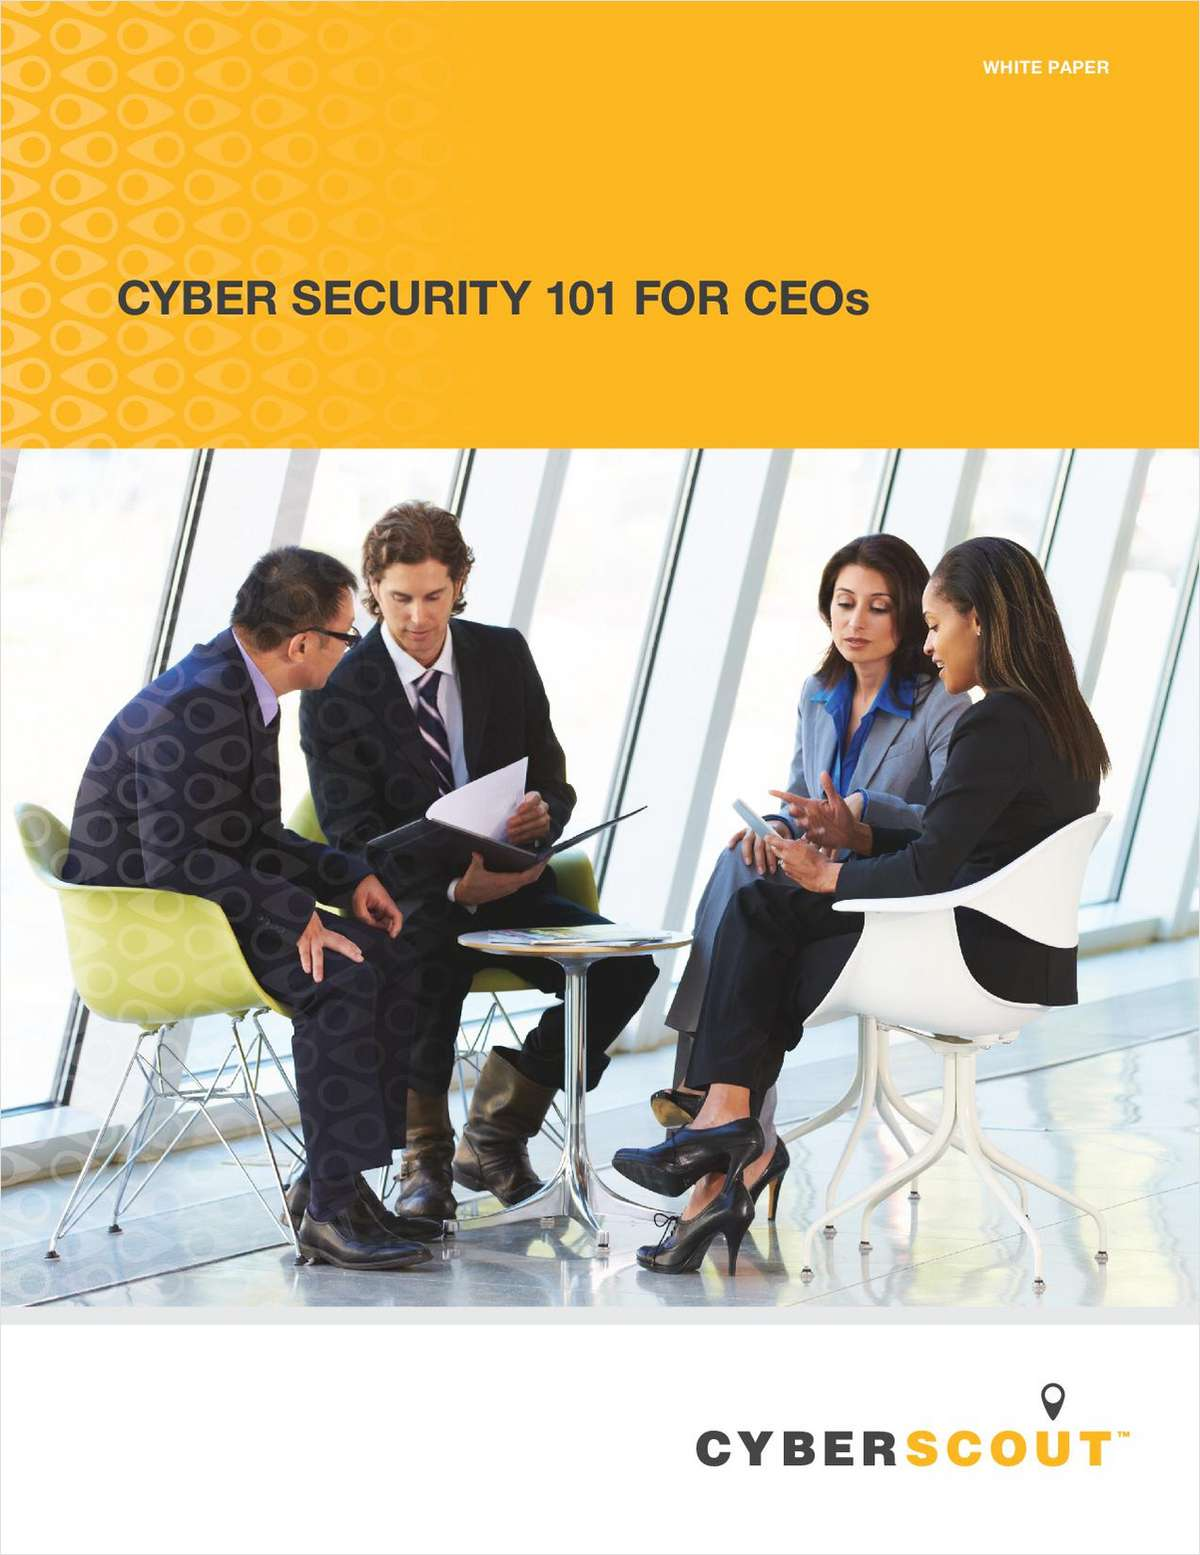 Cyber Security 101: Coaching CEOs